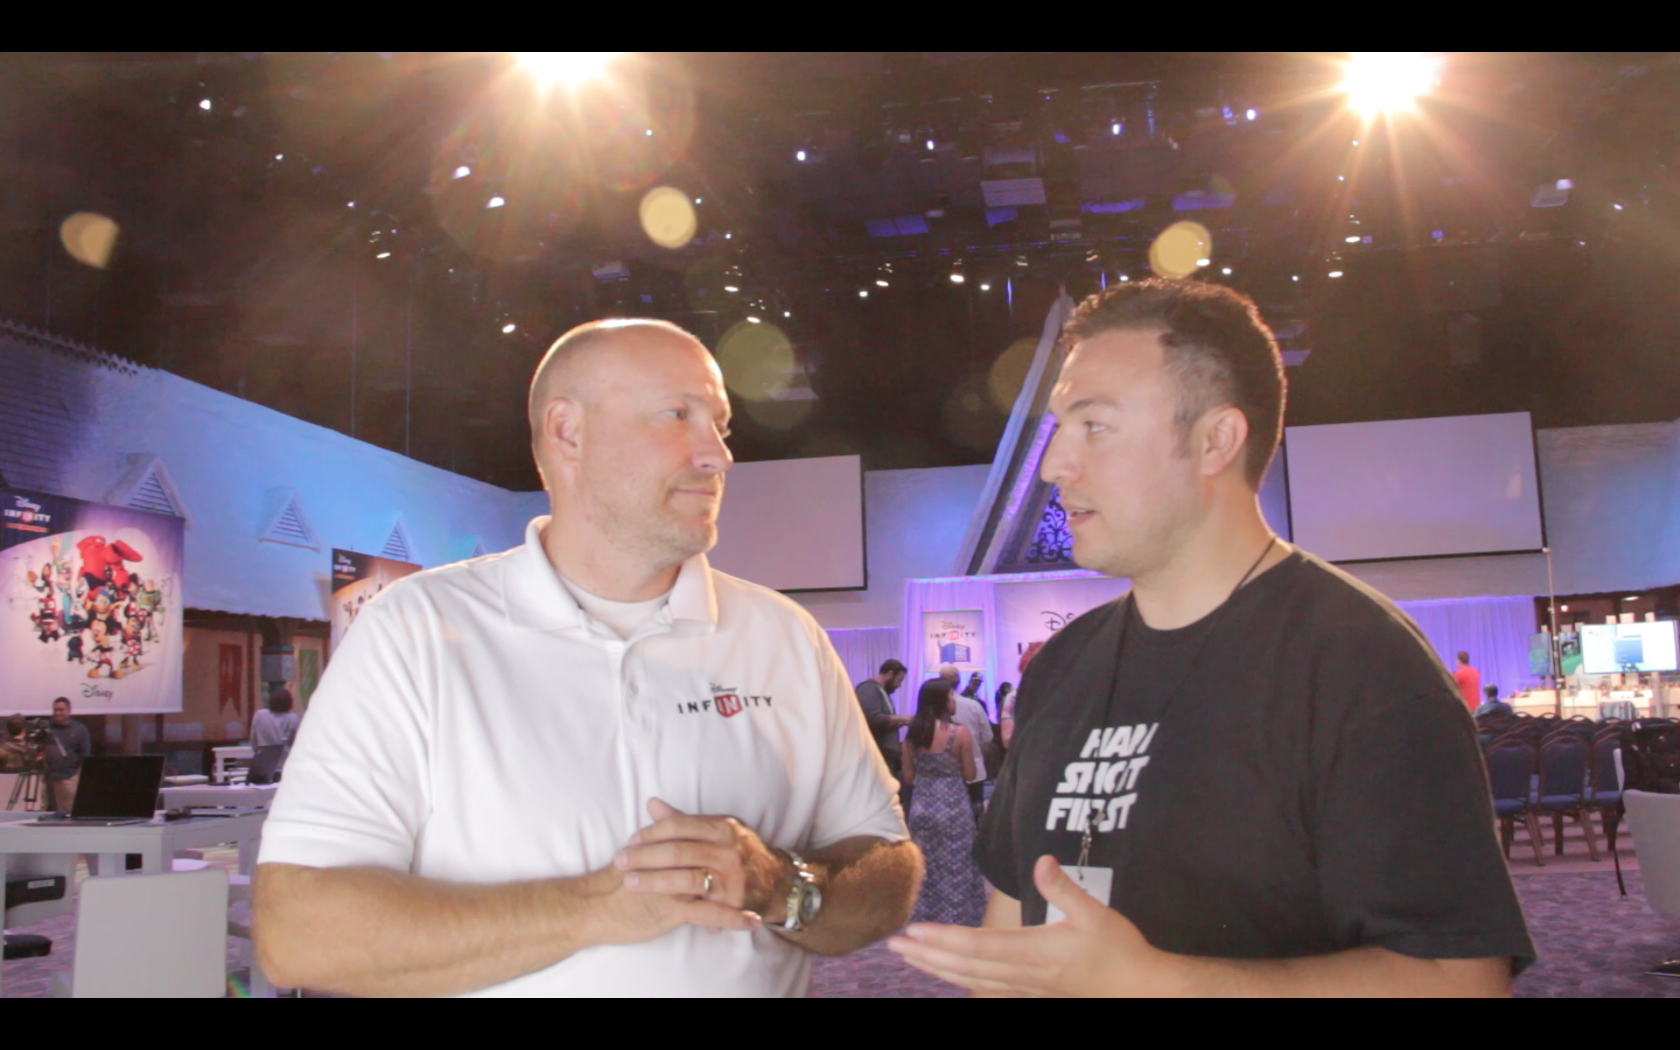 Disney Infinity 3.0 Interview with Bob Lowe at the Toy Box Summit